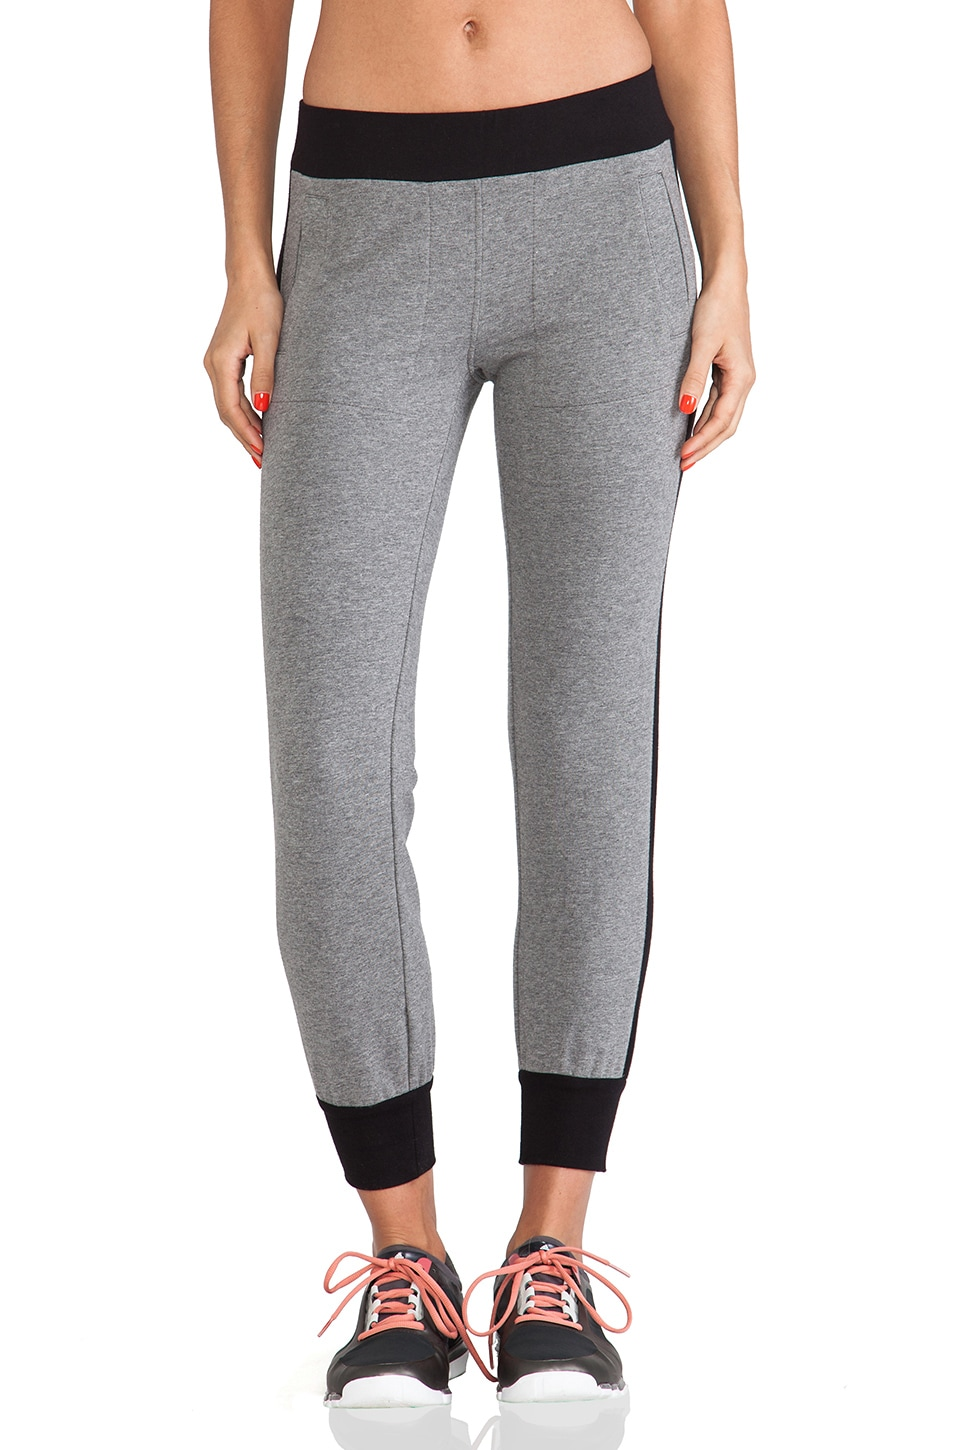 Norma Kamali Side Stripe Jogging Pants in Dark Grey & Black